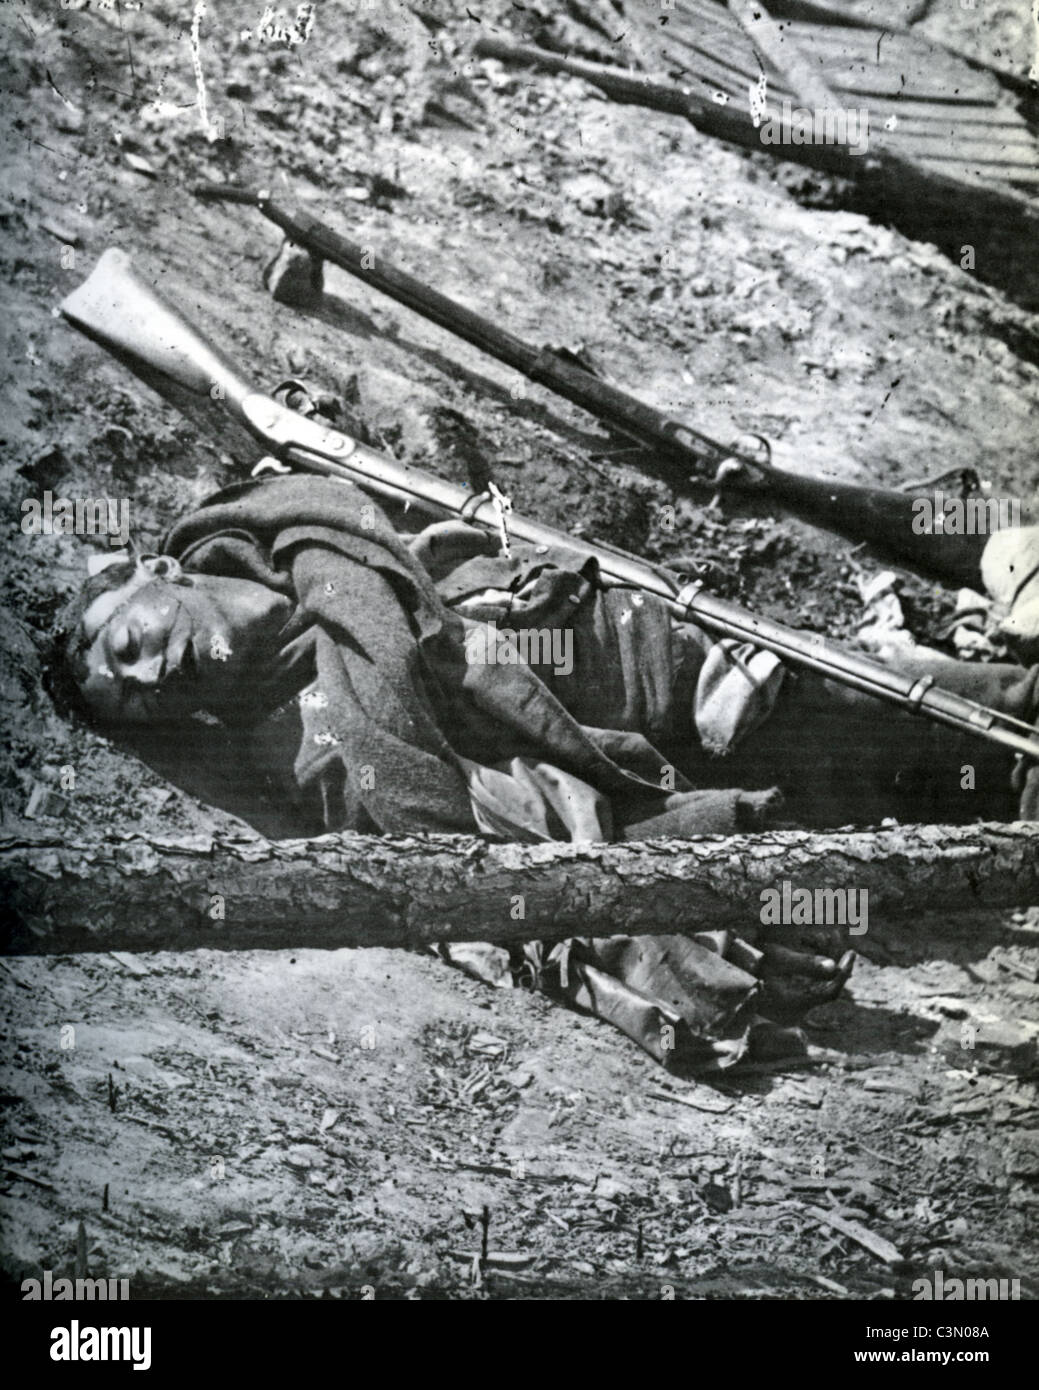 AMERICAN CIVIL WAR: Dead Confederate soldier at Petersburg in 1865 - Stock Image